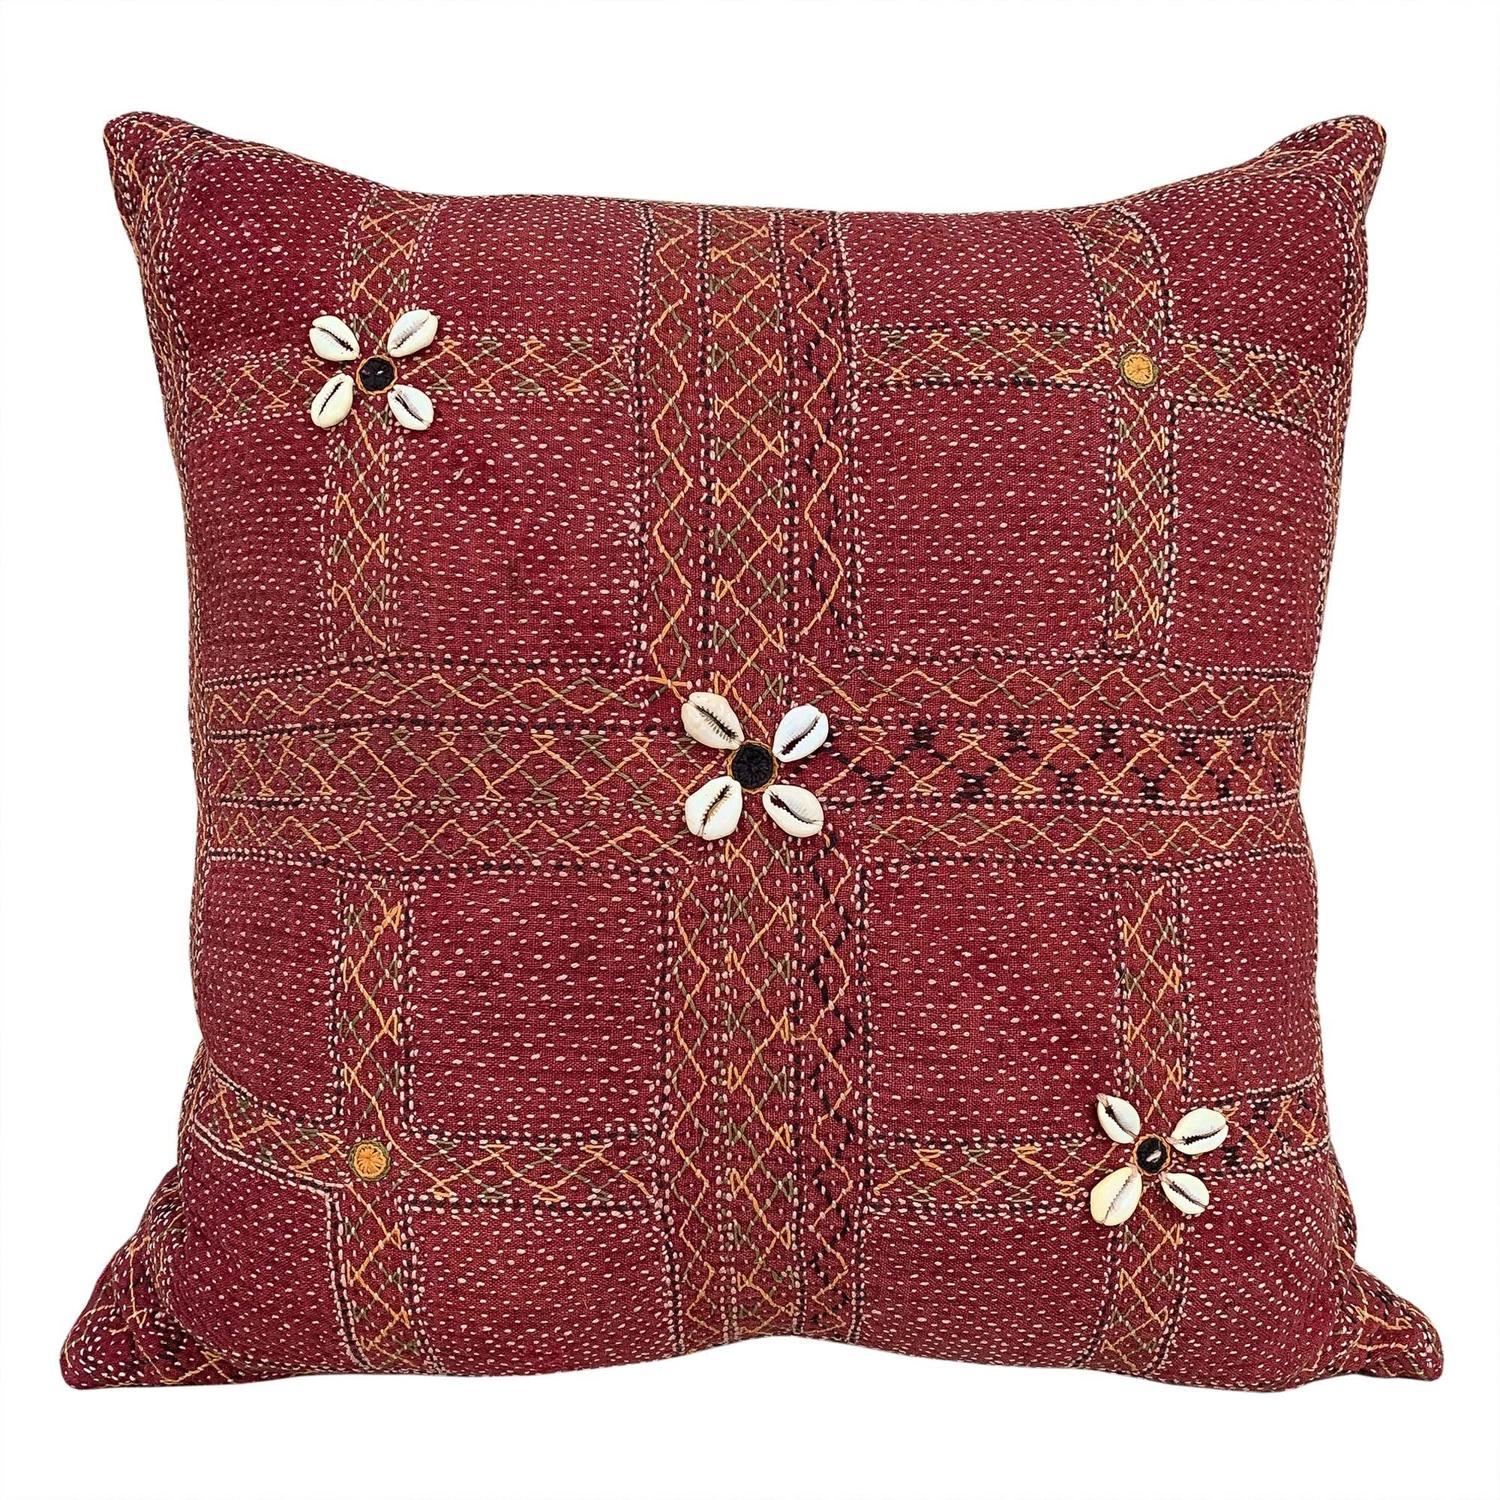 Banjara kalchi cushion with cowrie flowers